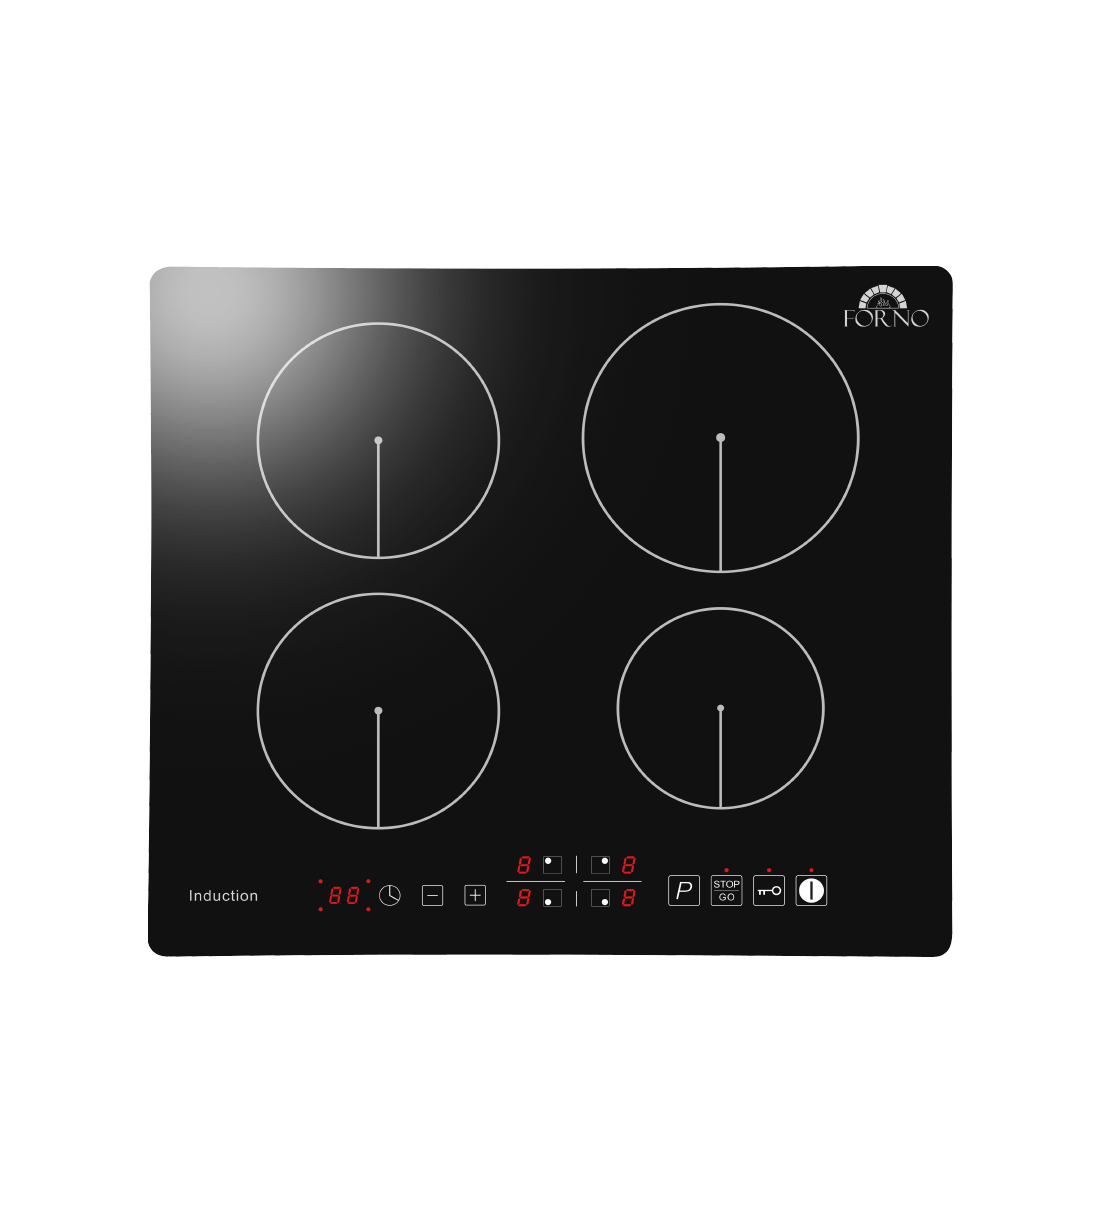 Forno Cooktop in Black color showcased by Corbeil Electro Store